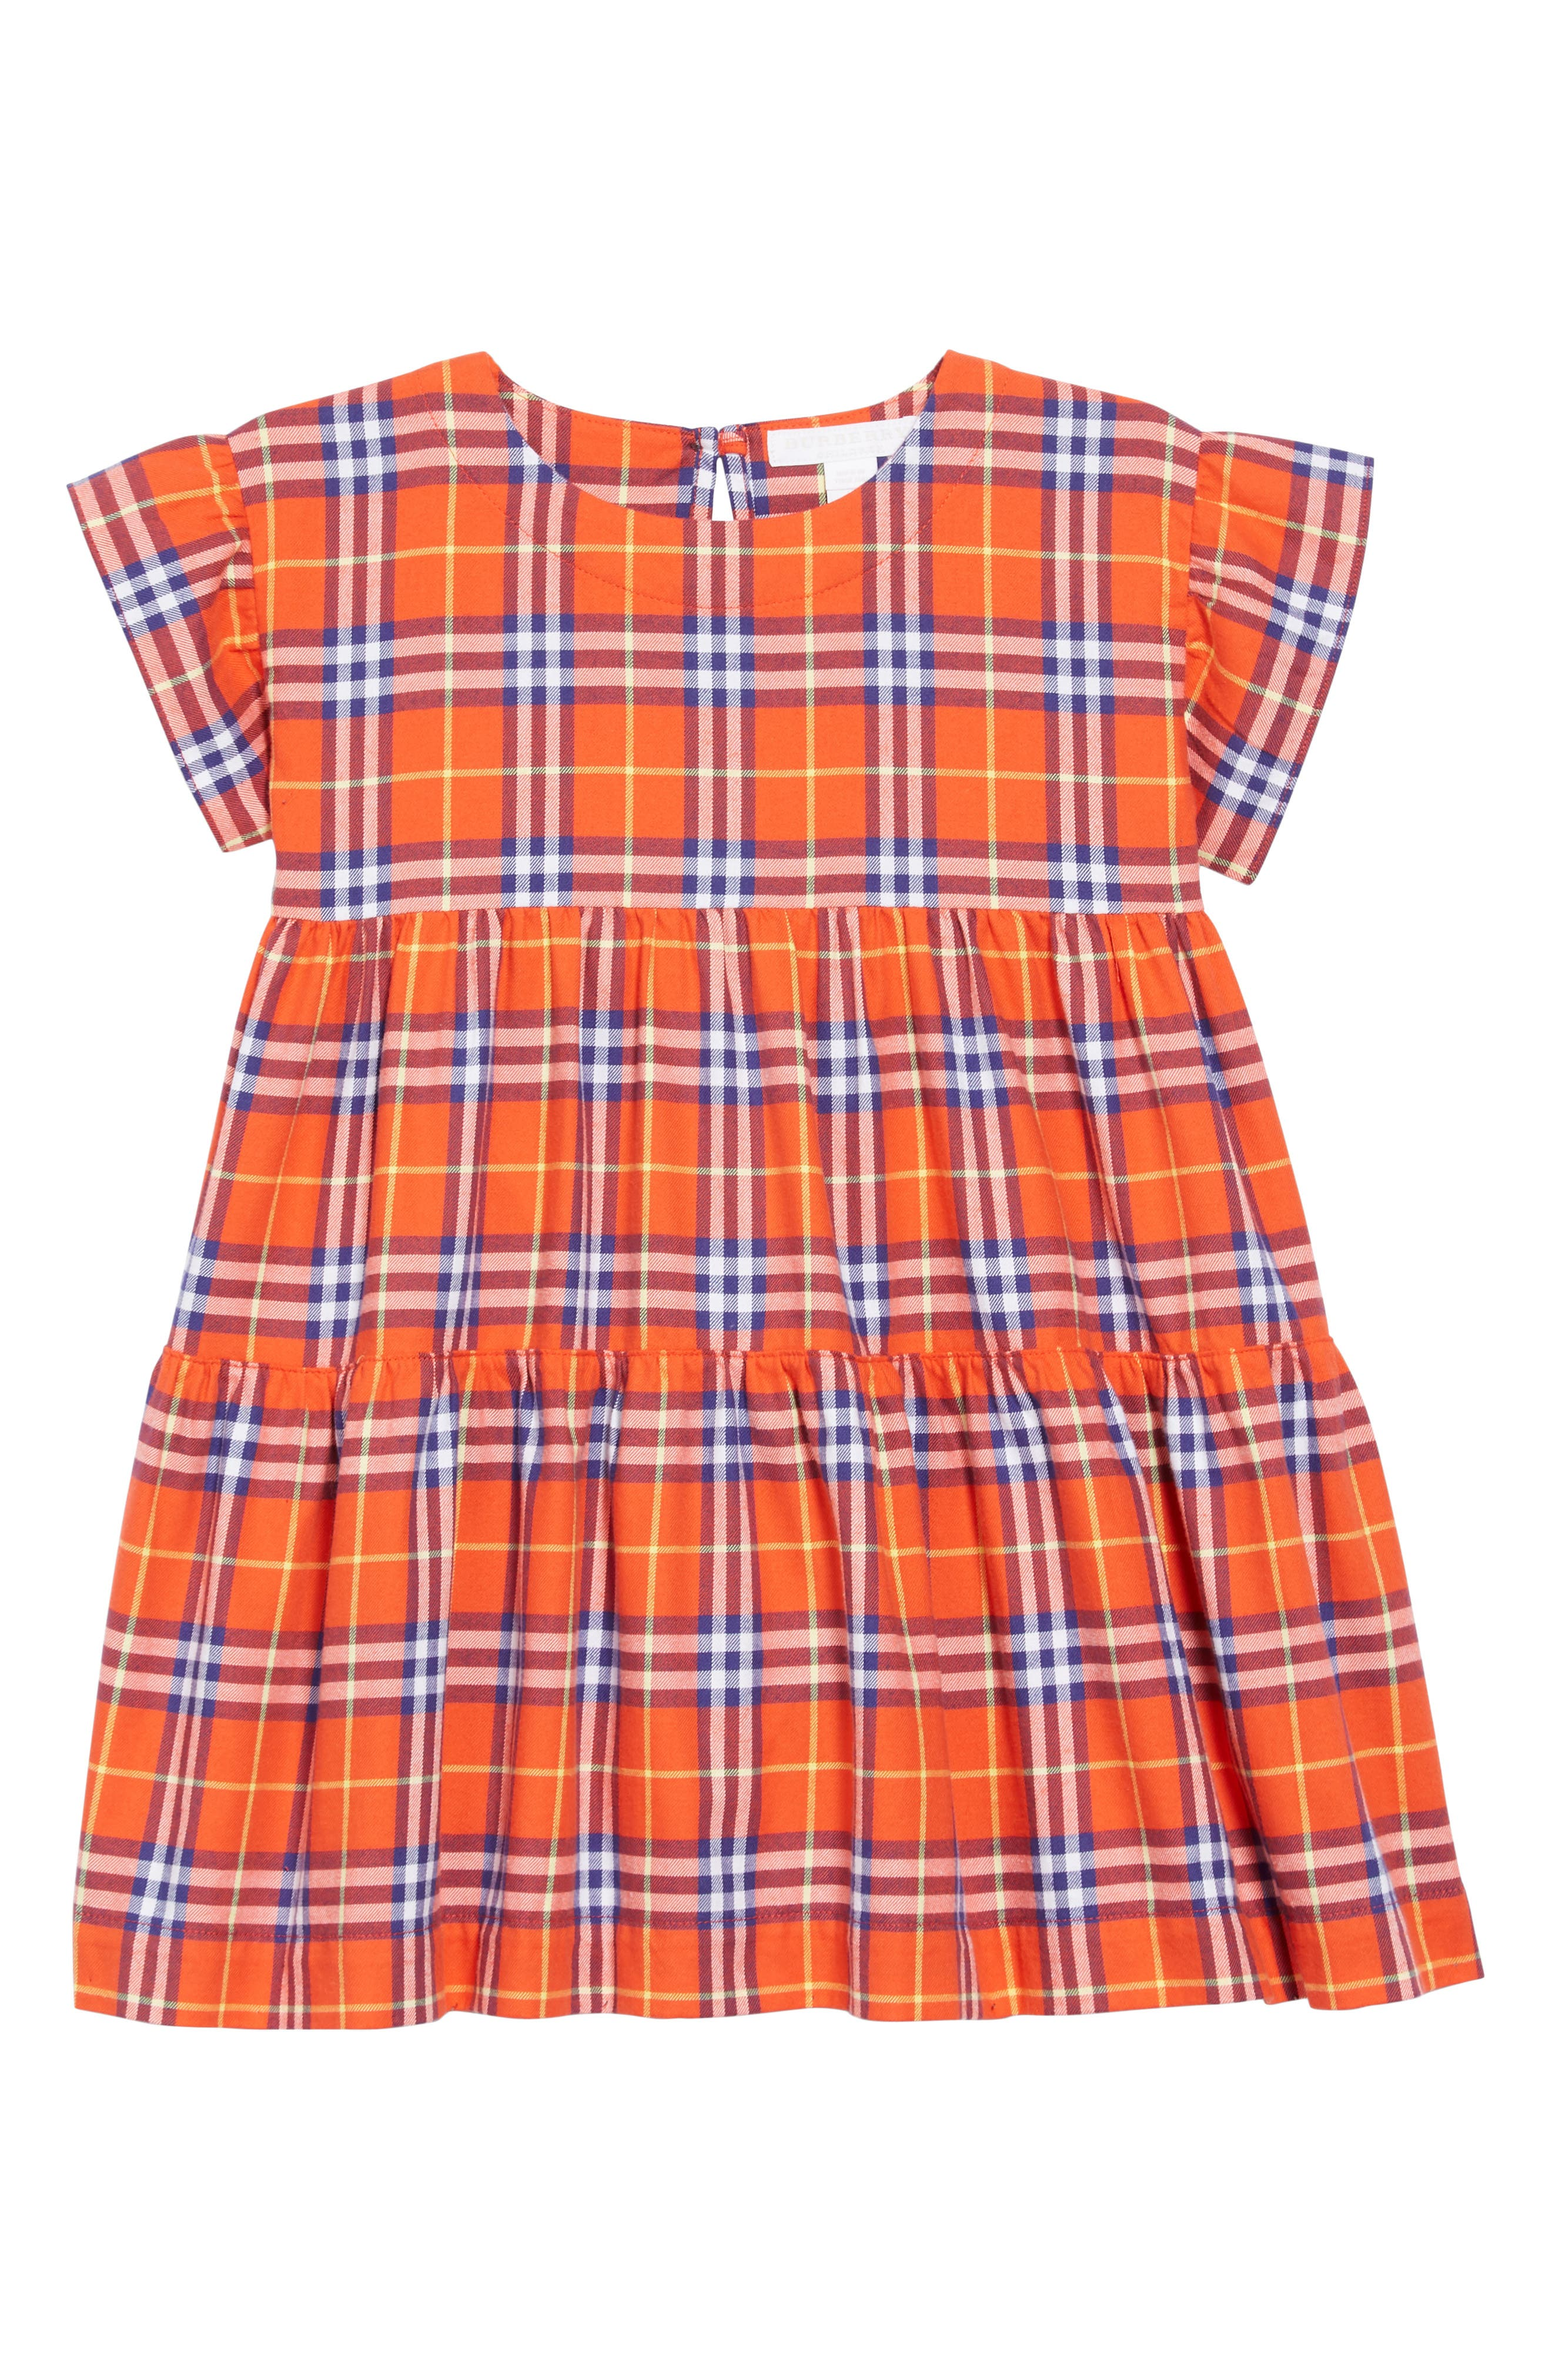 Alima Check Dress,                             Main thumbnail 1, color,                             ORANGE RED CHECK